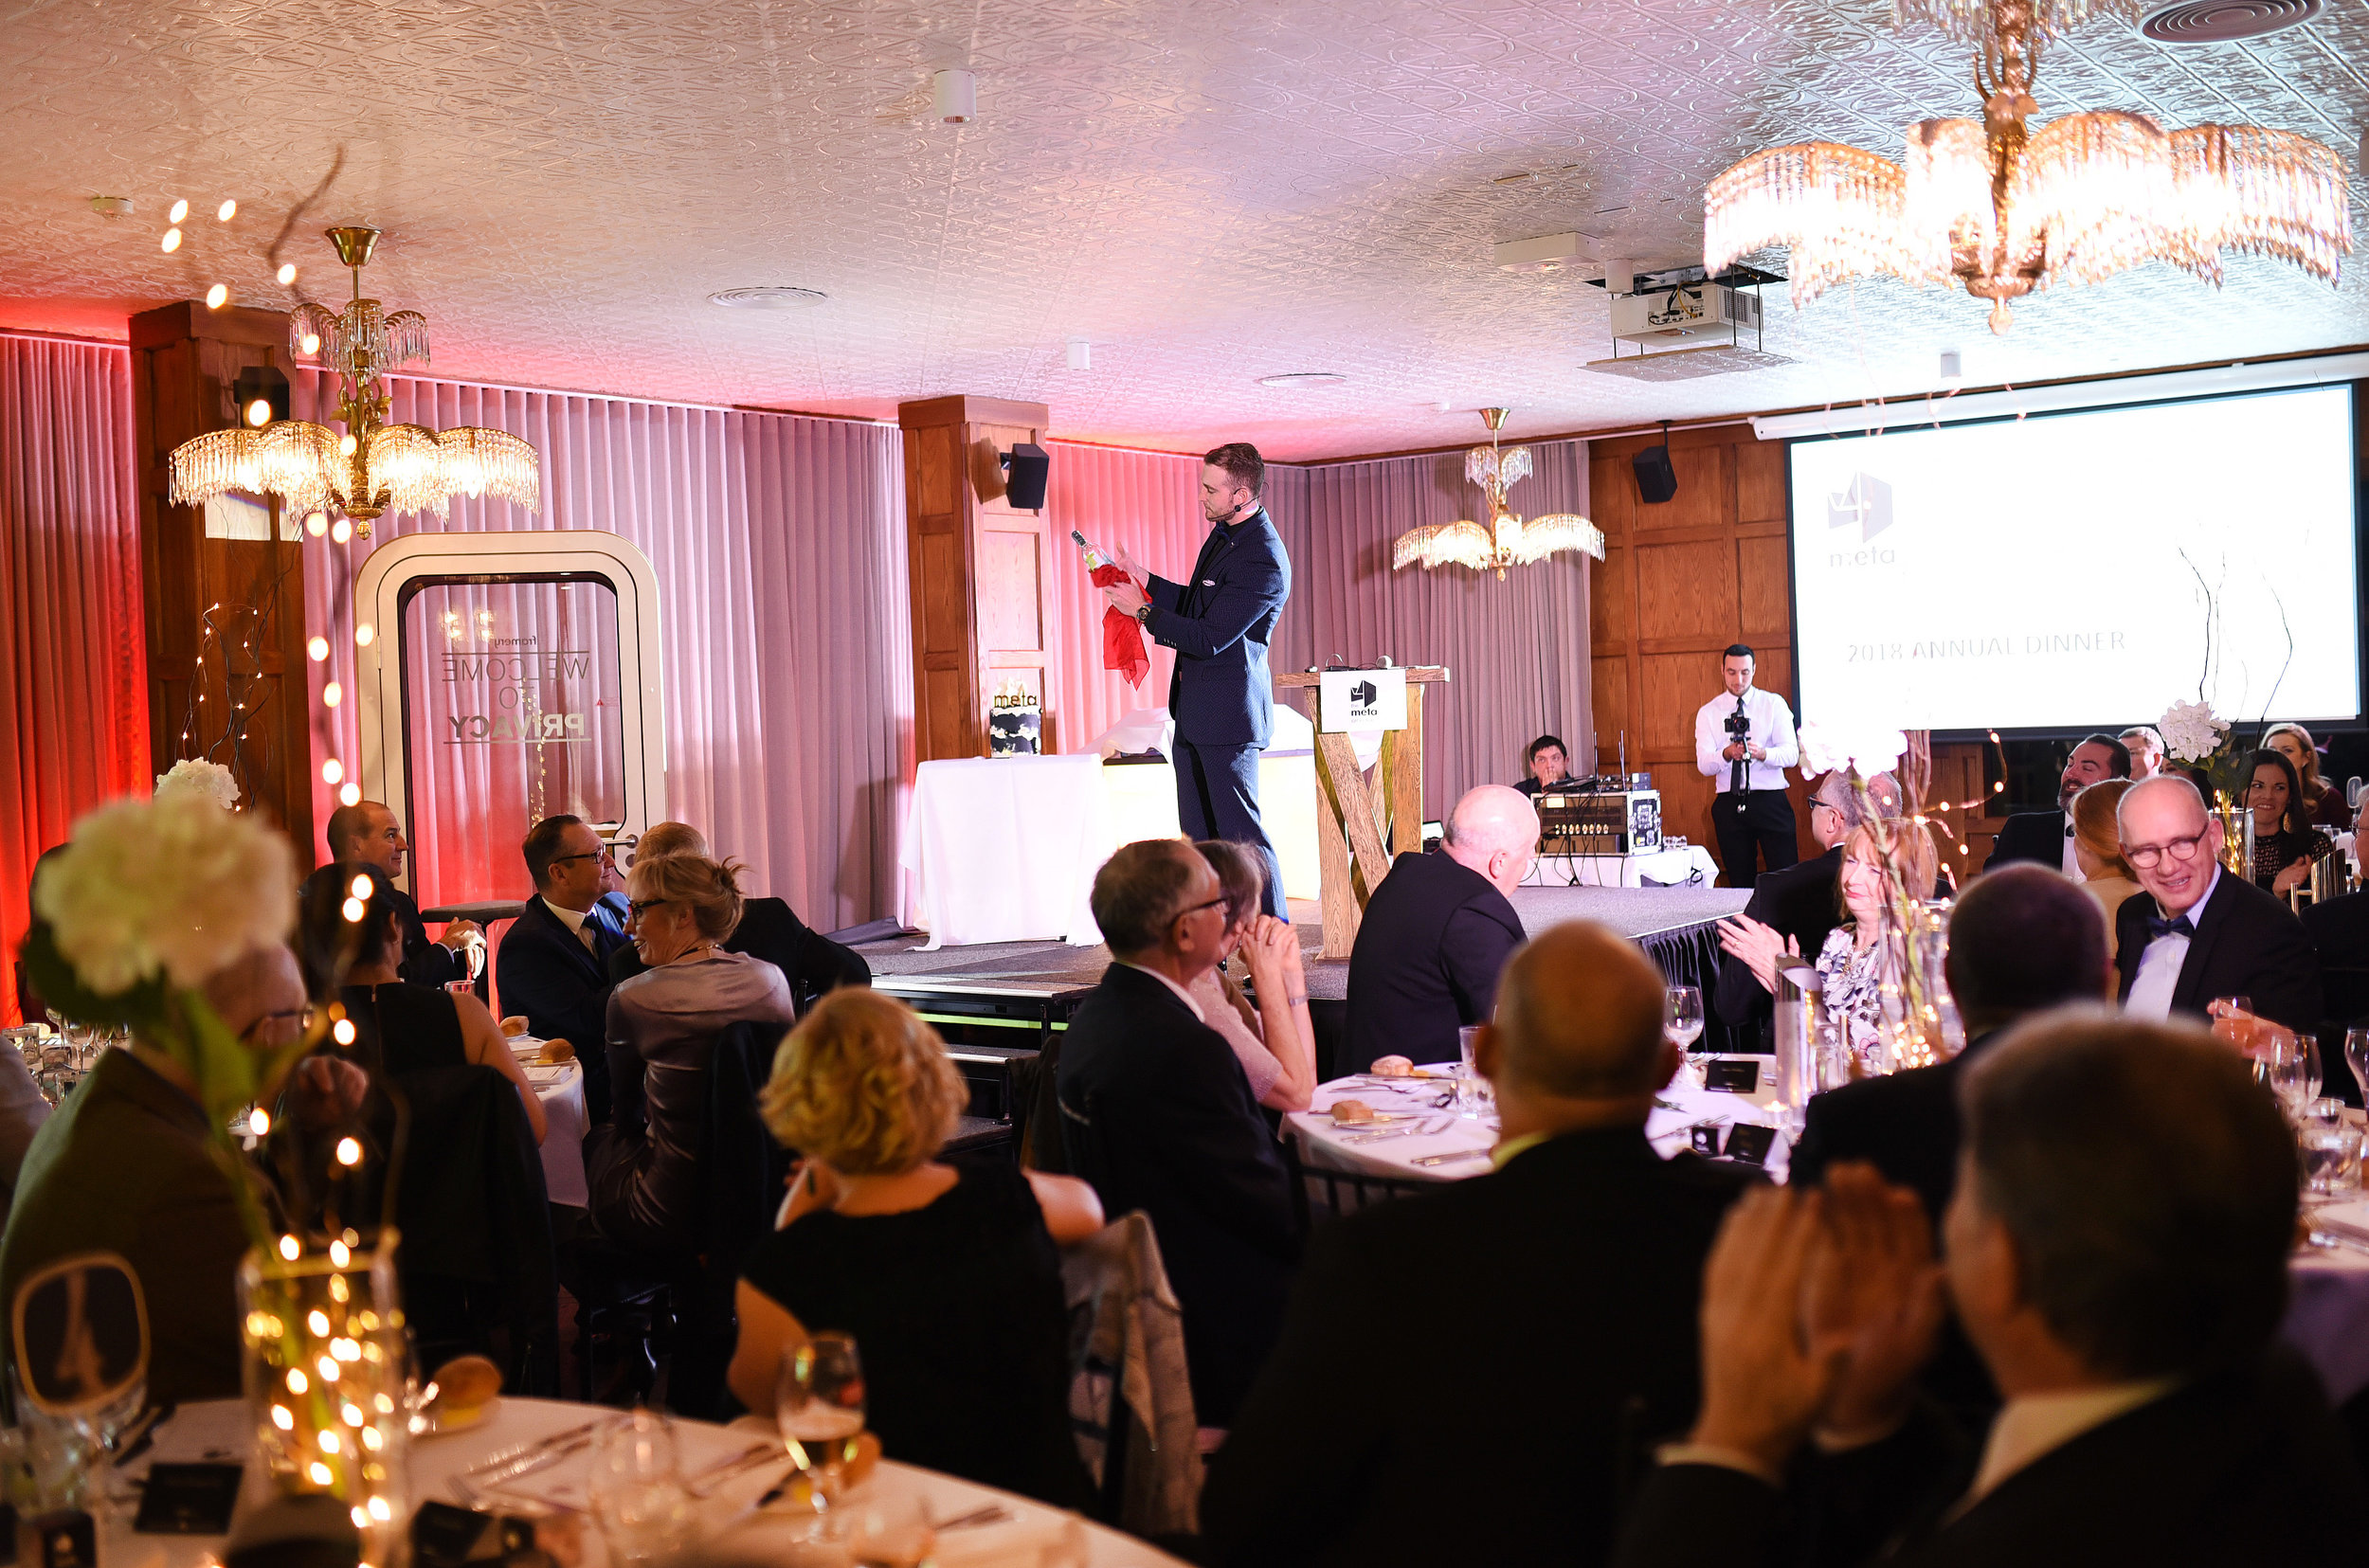 Perfect After Dinner Entertainment - Whilst your guests relax after their dinner, Josh entertains the whole audience with Magic and Mind Reading. This will leave your audience with an experience that is sophisticated, amazing and memorable.